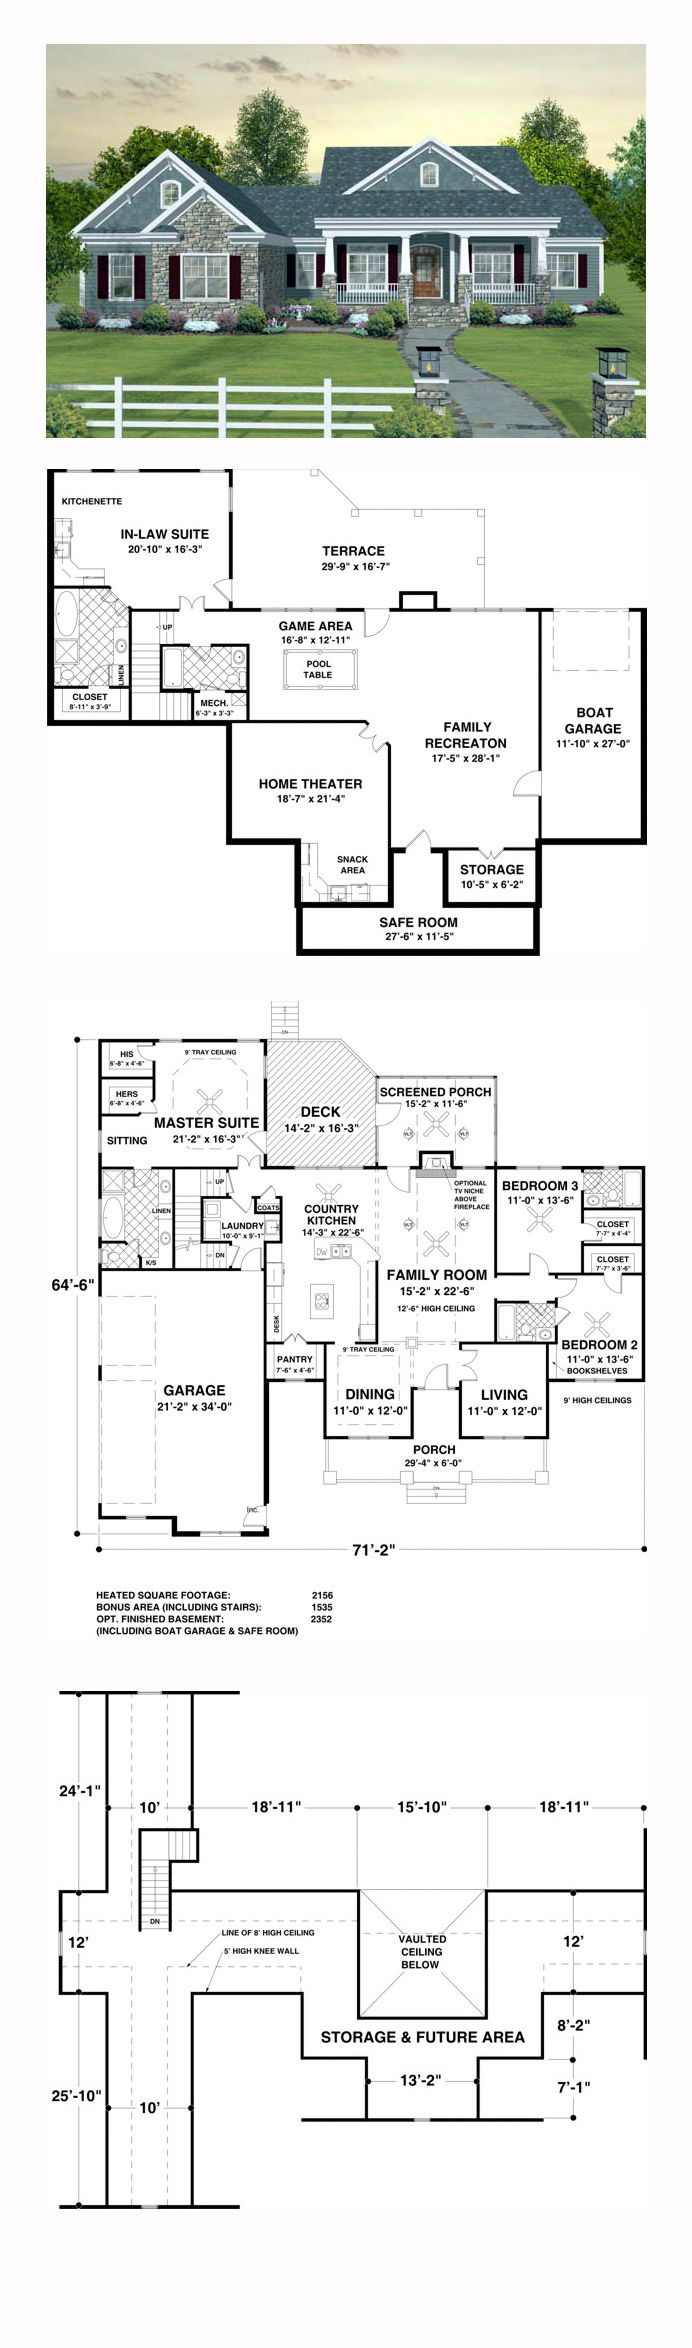 country style cool house plan id chp 45369 total living area country style cool house plan id chp 45369 total living area 2156